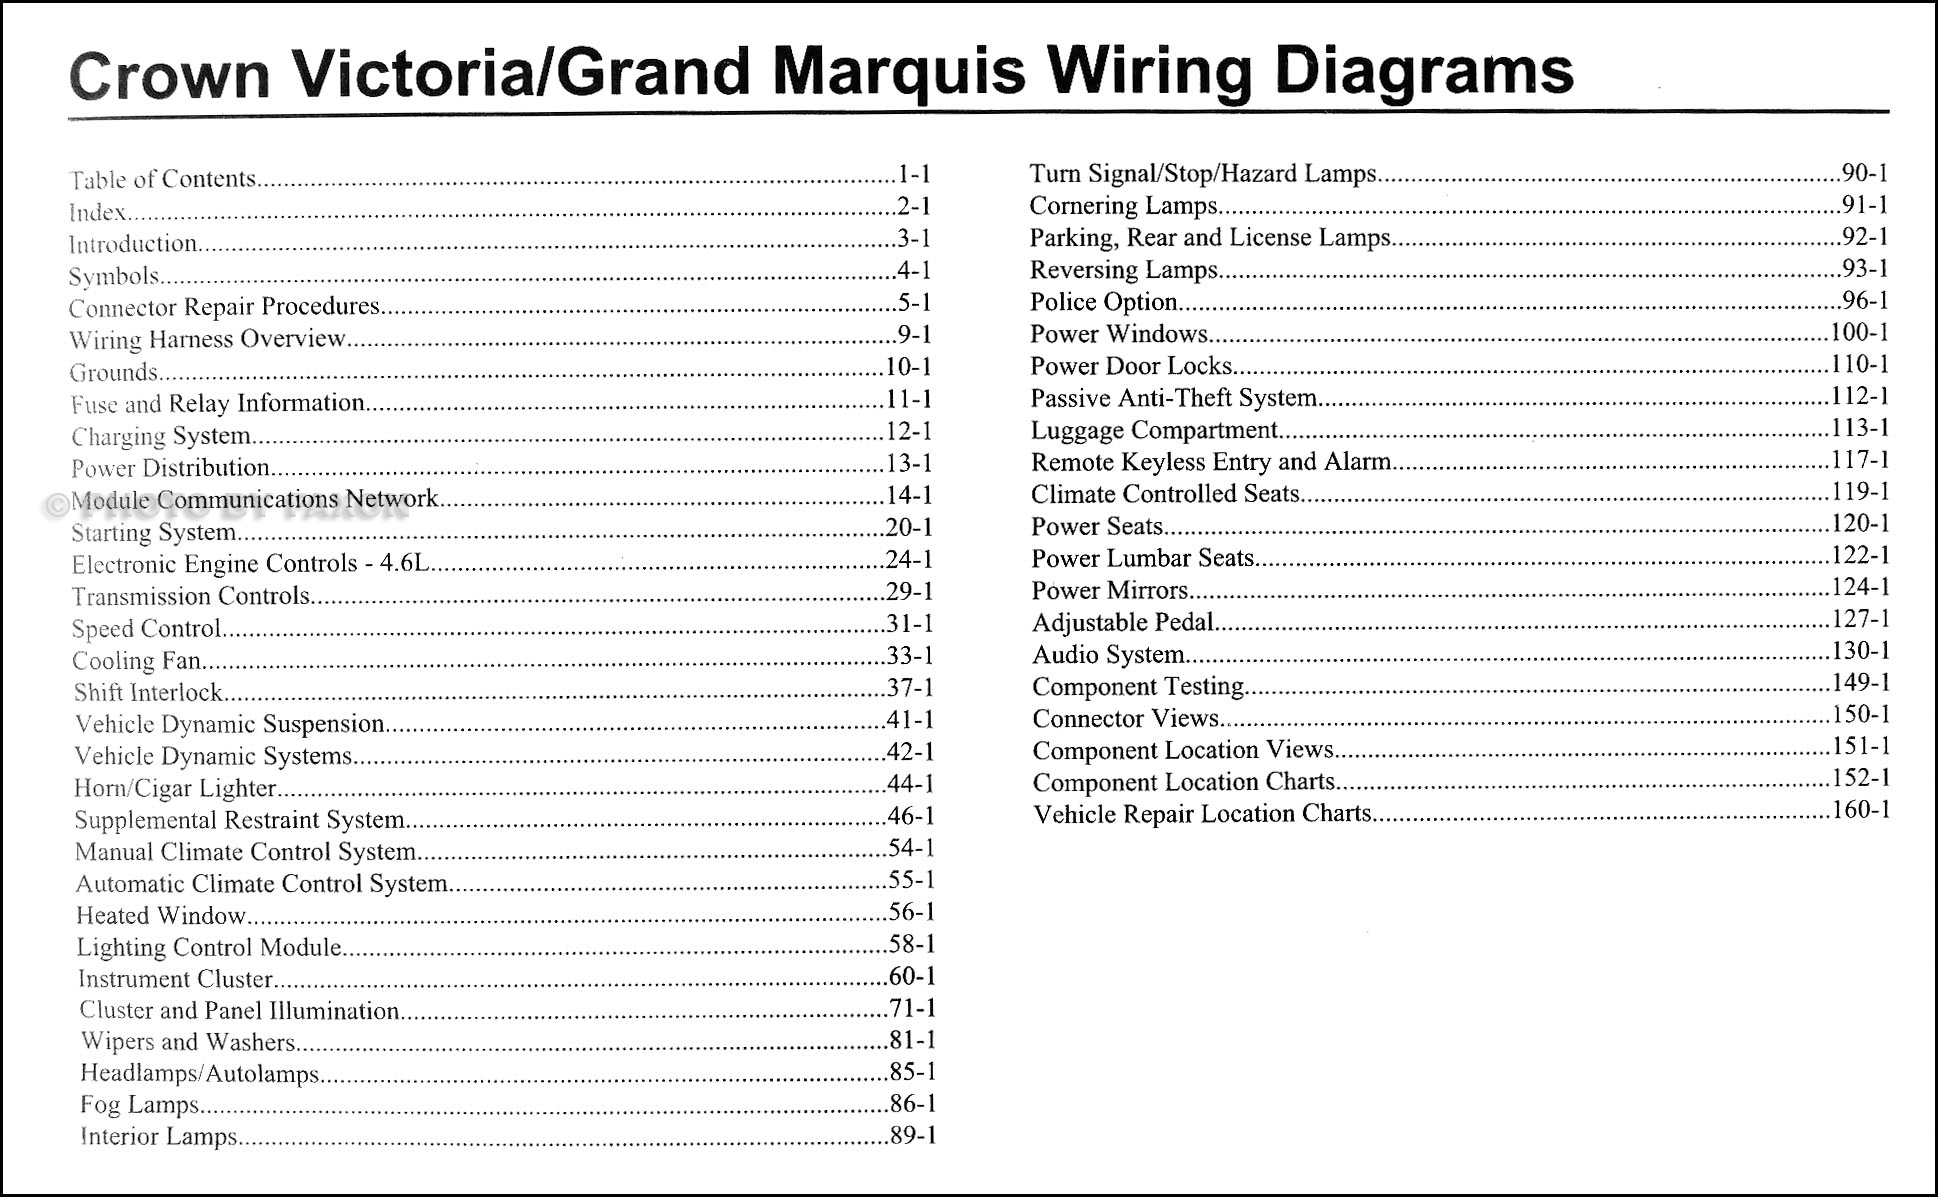 2009FordCrownVictoriaOWD TOC 2009 crown victoria & grand marquis original wiring diagram manual 2000 mercury grand marquis wiring diagram at crackthecode.co